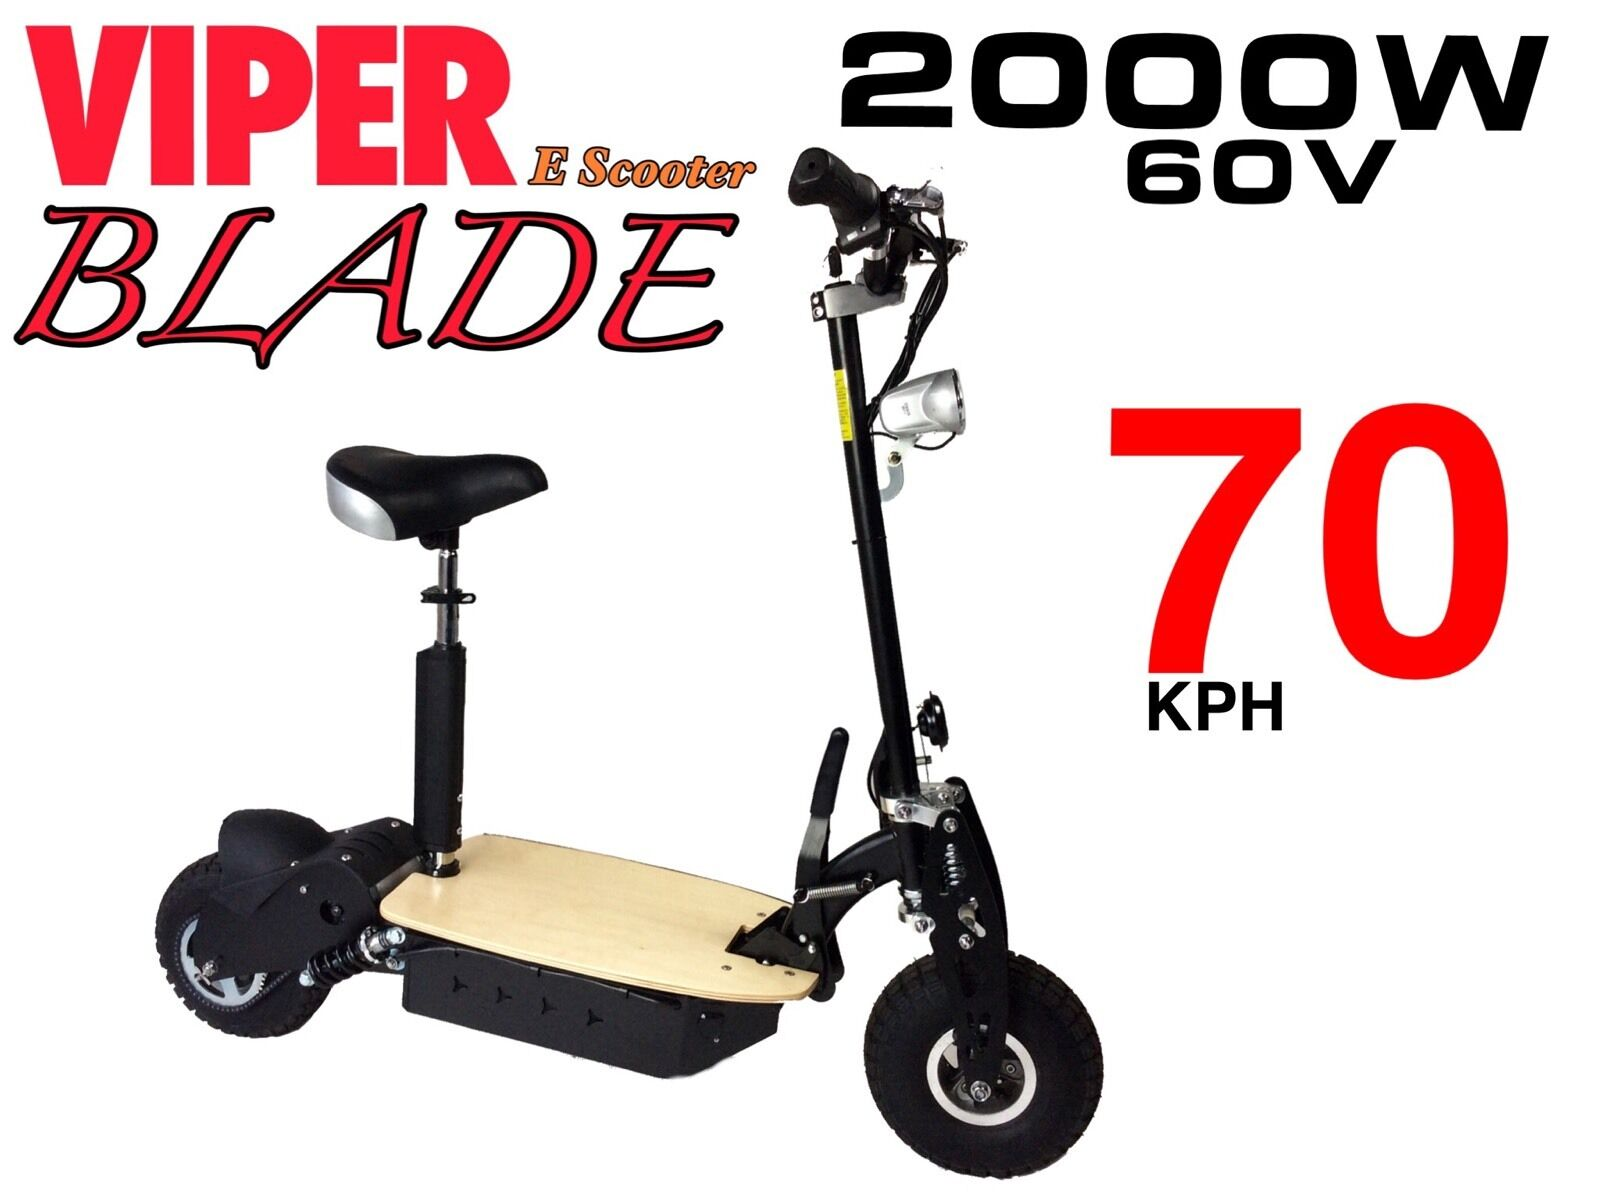 Electric Scooter 2000W 60V Viper Blade New 2018 Model, Terrain Tyres, 70KPH.